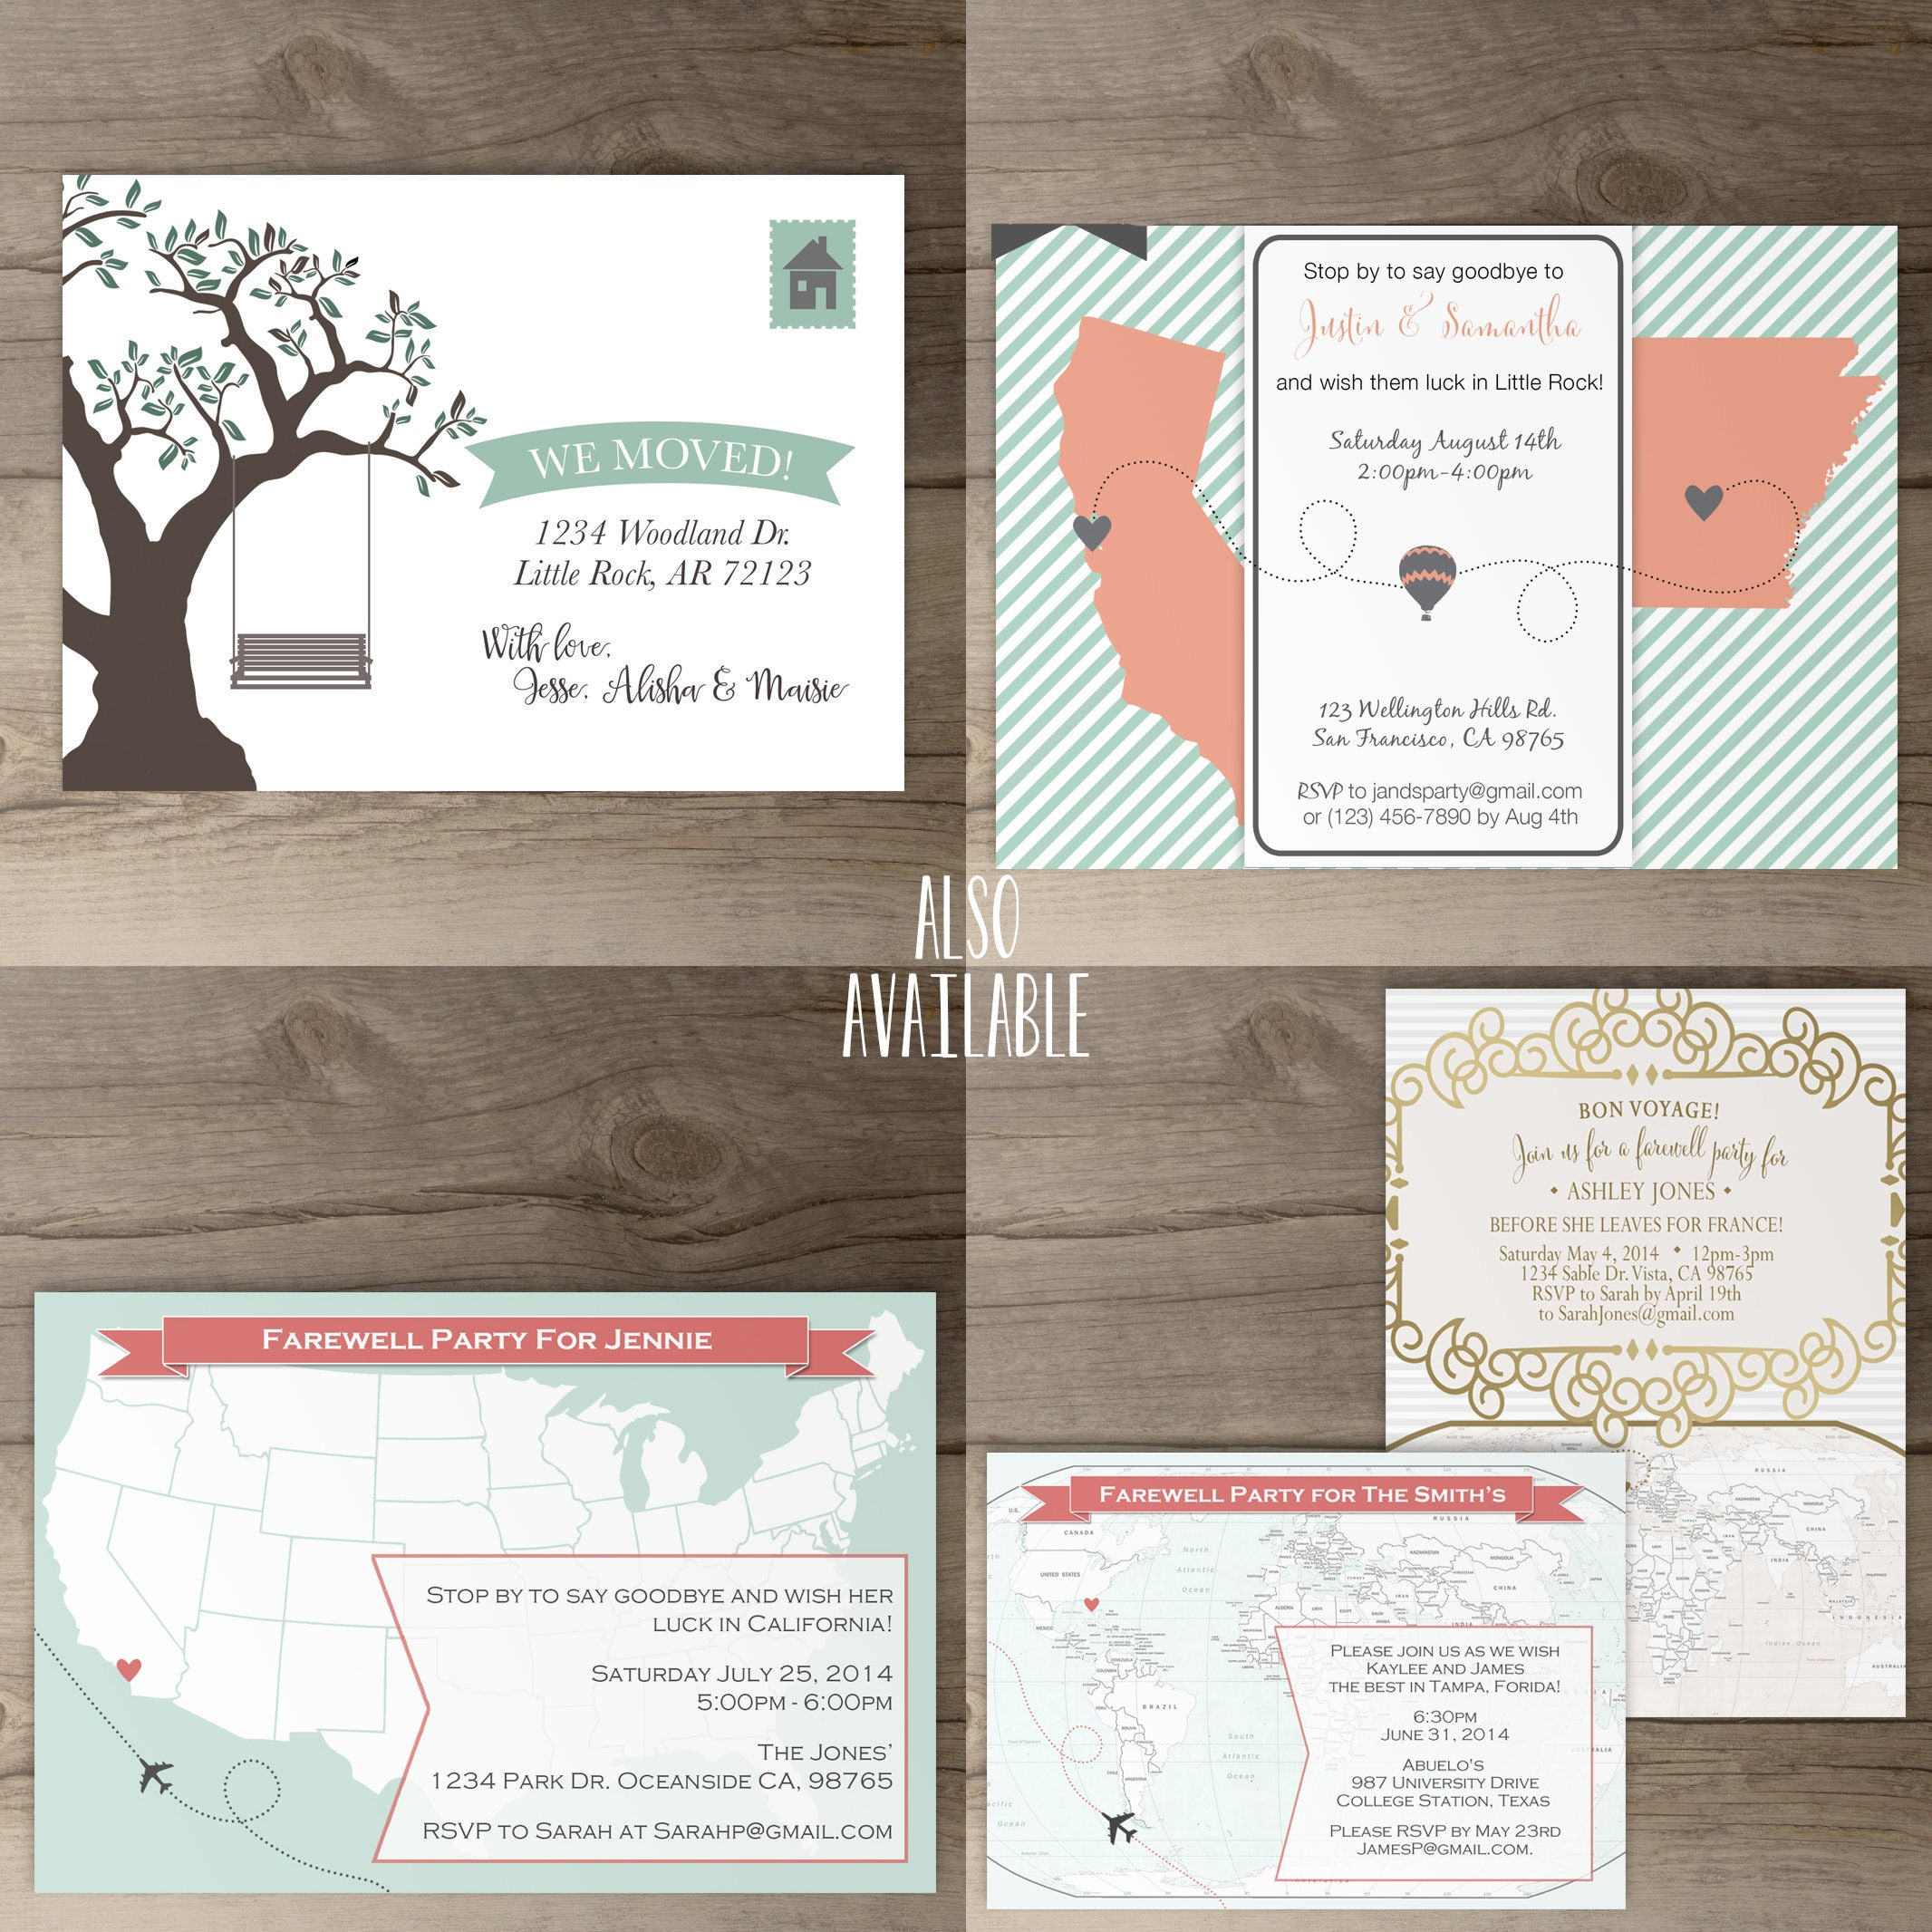 Moving / Going Away Party Invitations / Invites / Announcements ...